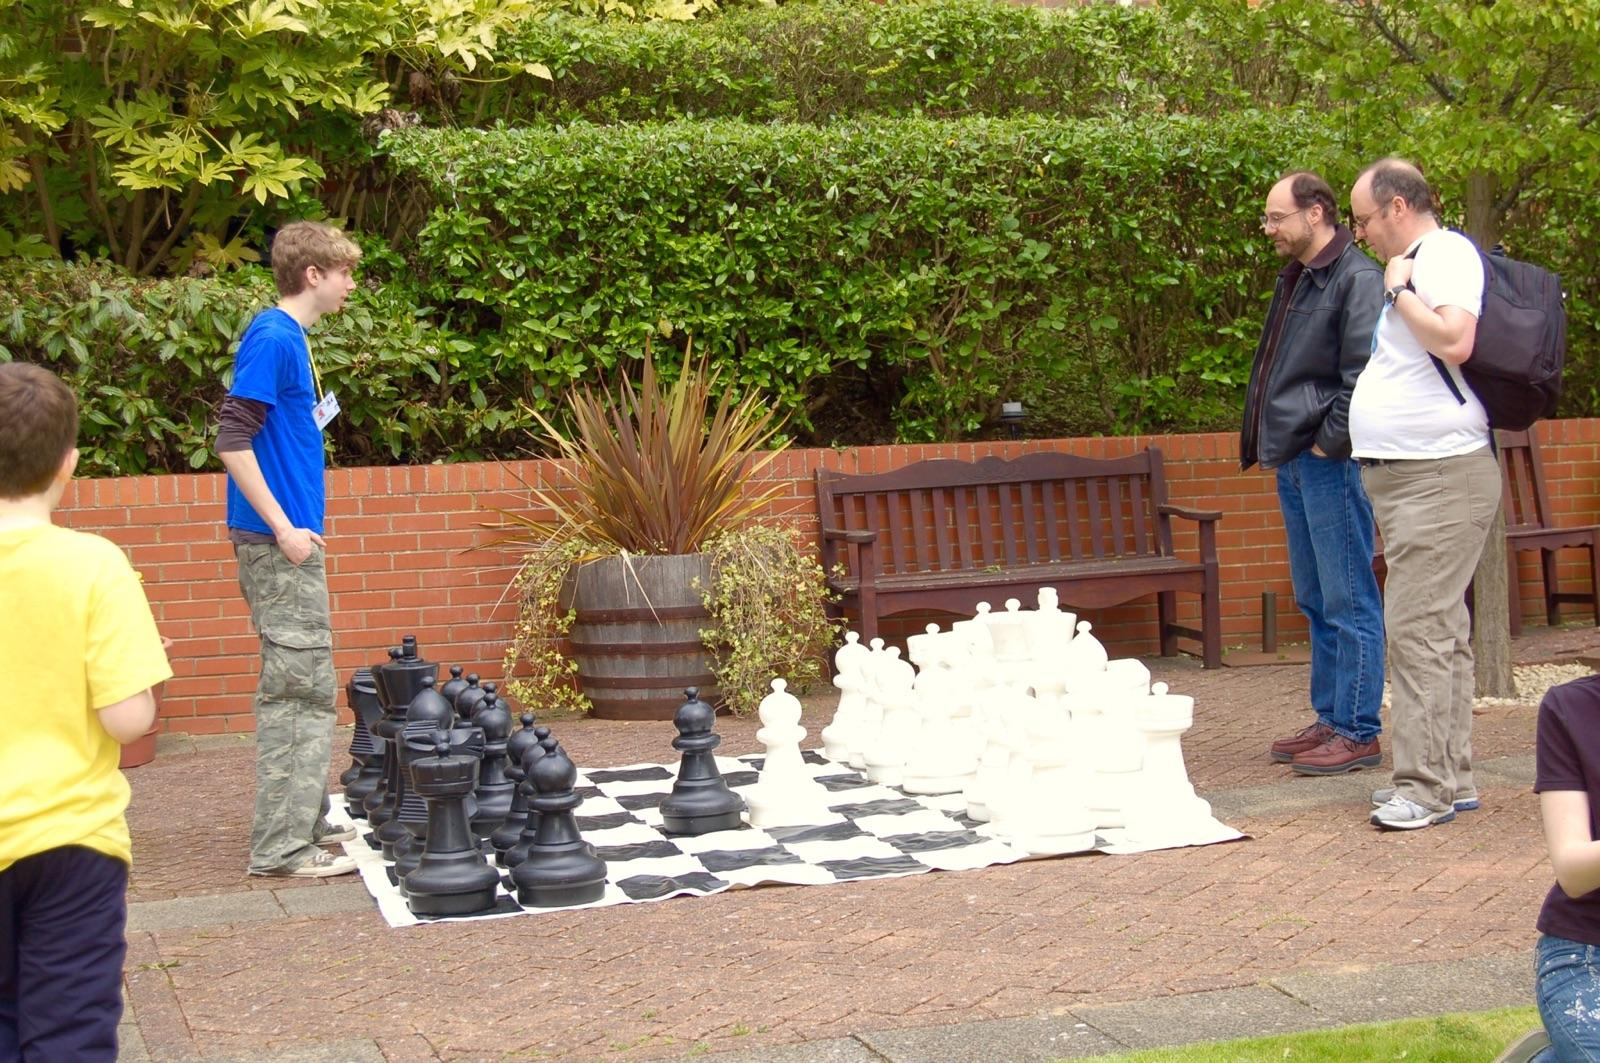 Pictured, my father (in the black jacket) and I once played an oversized game in England. He's an engineer and I'm not, so my goal in the game was usually to delay the inevitable.